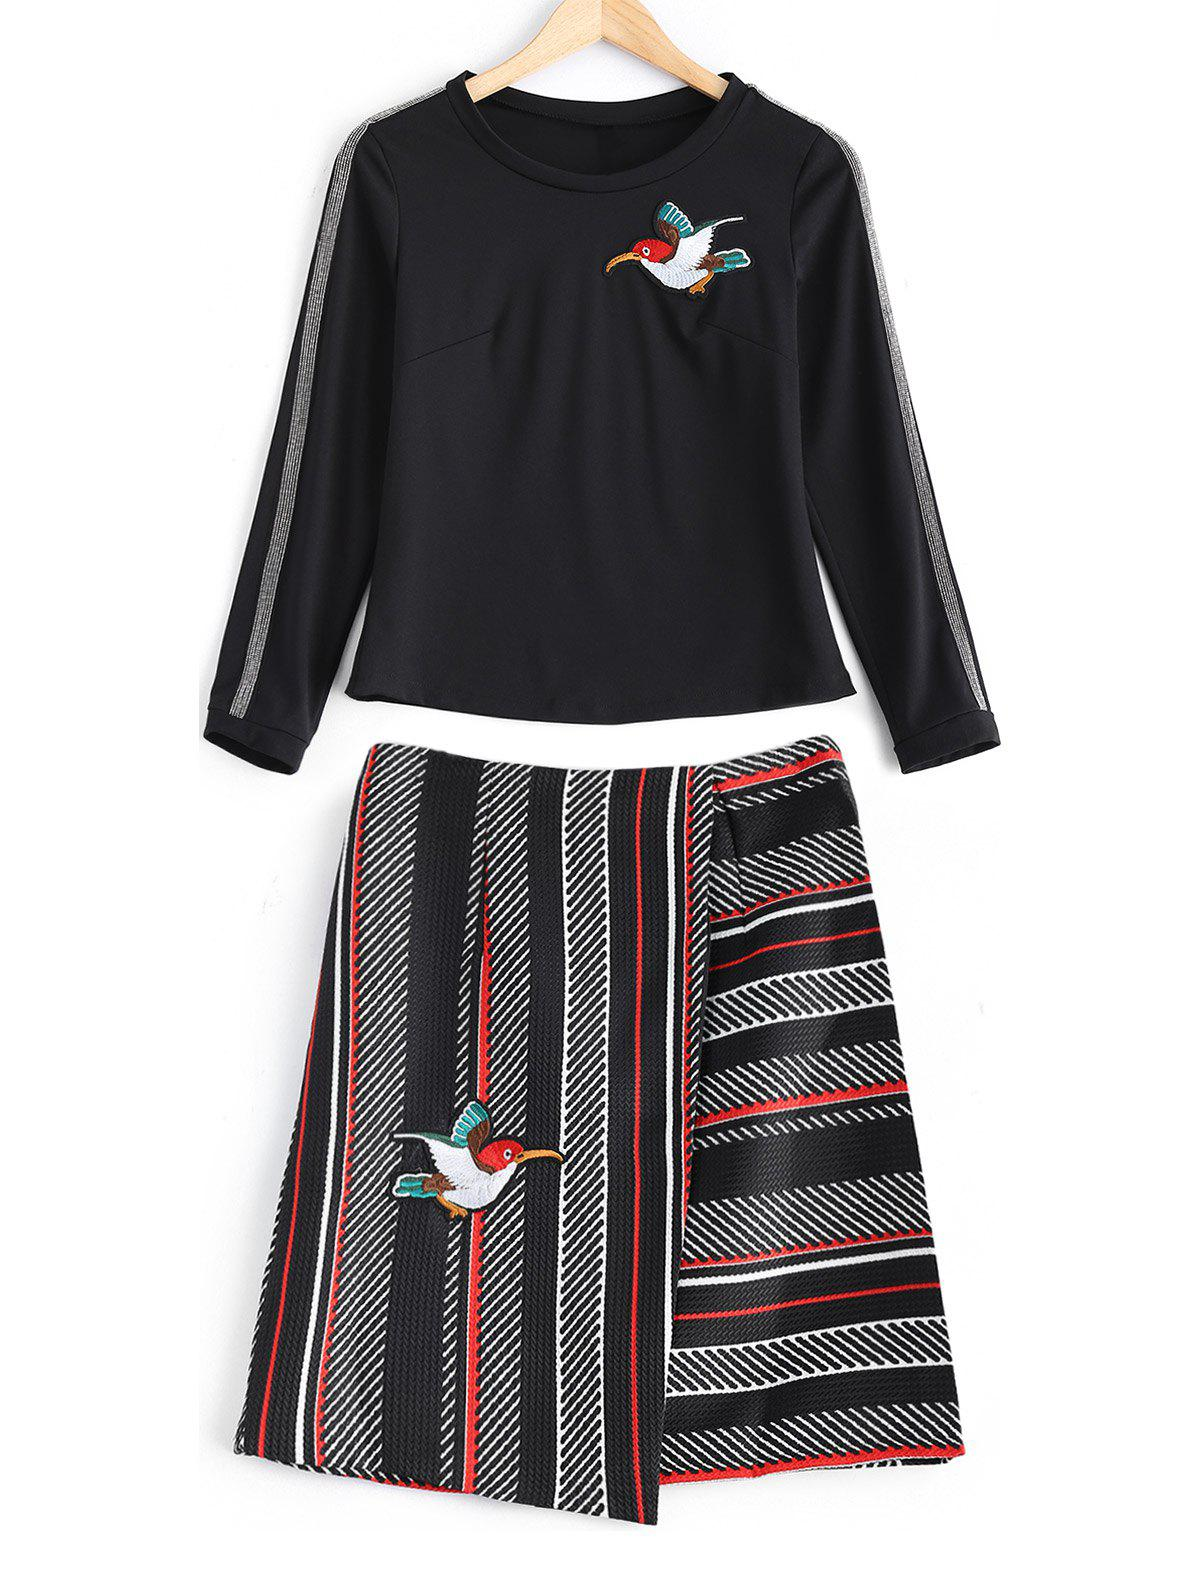 Bird Embroidered Stretchy T-Shirt + Textured Striped Skirt Twinset - BLACK M